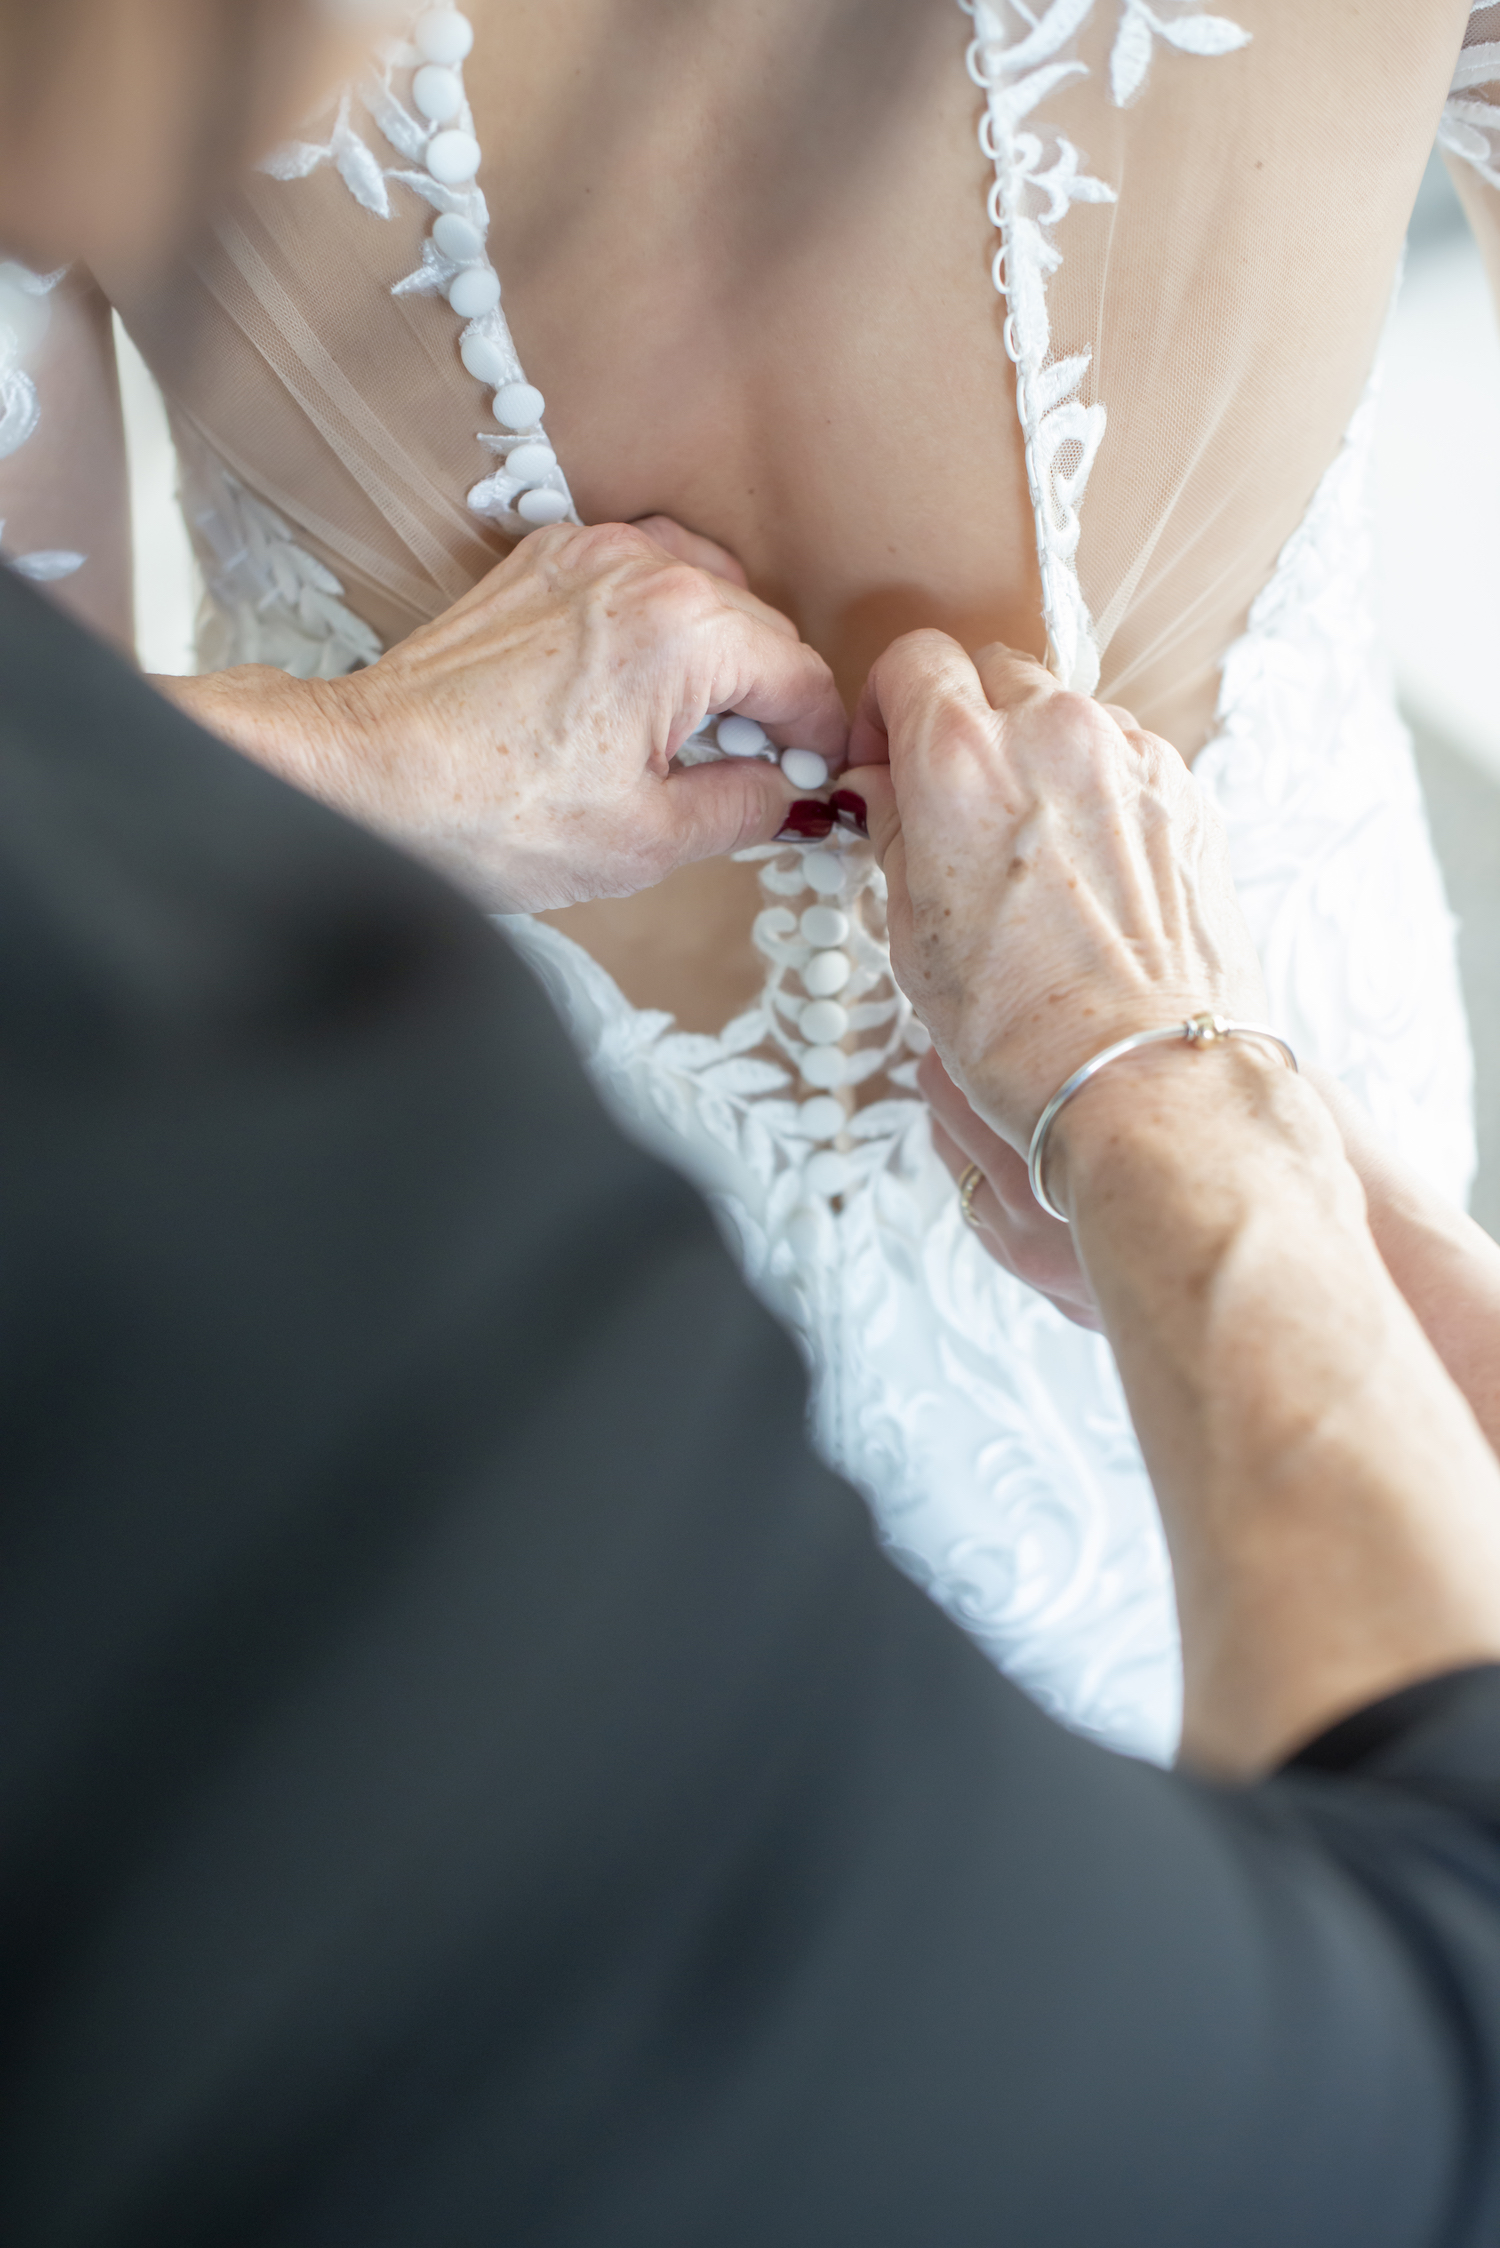 Mother of bride finishing buttoning bride's gown